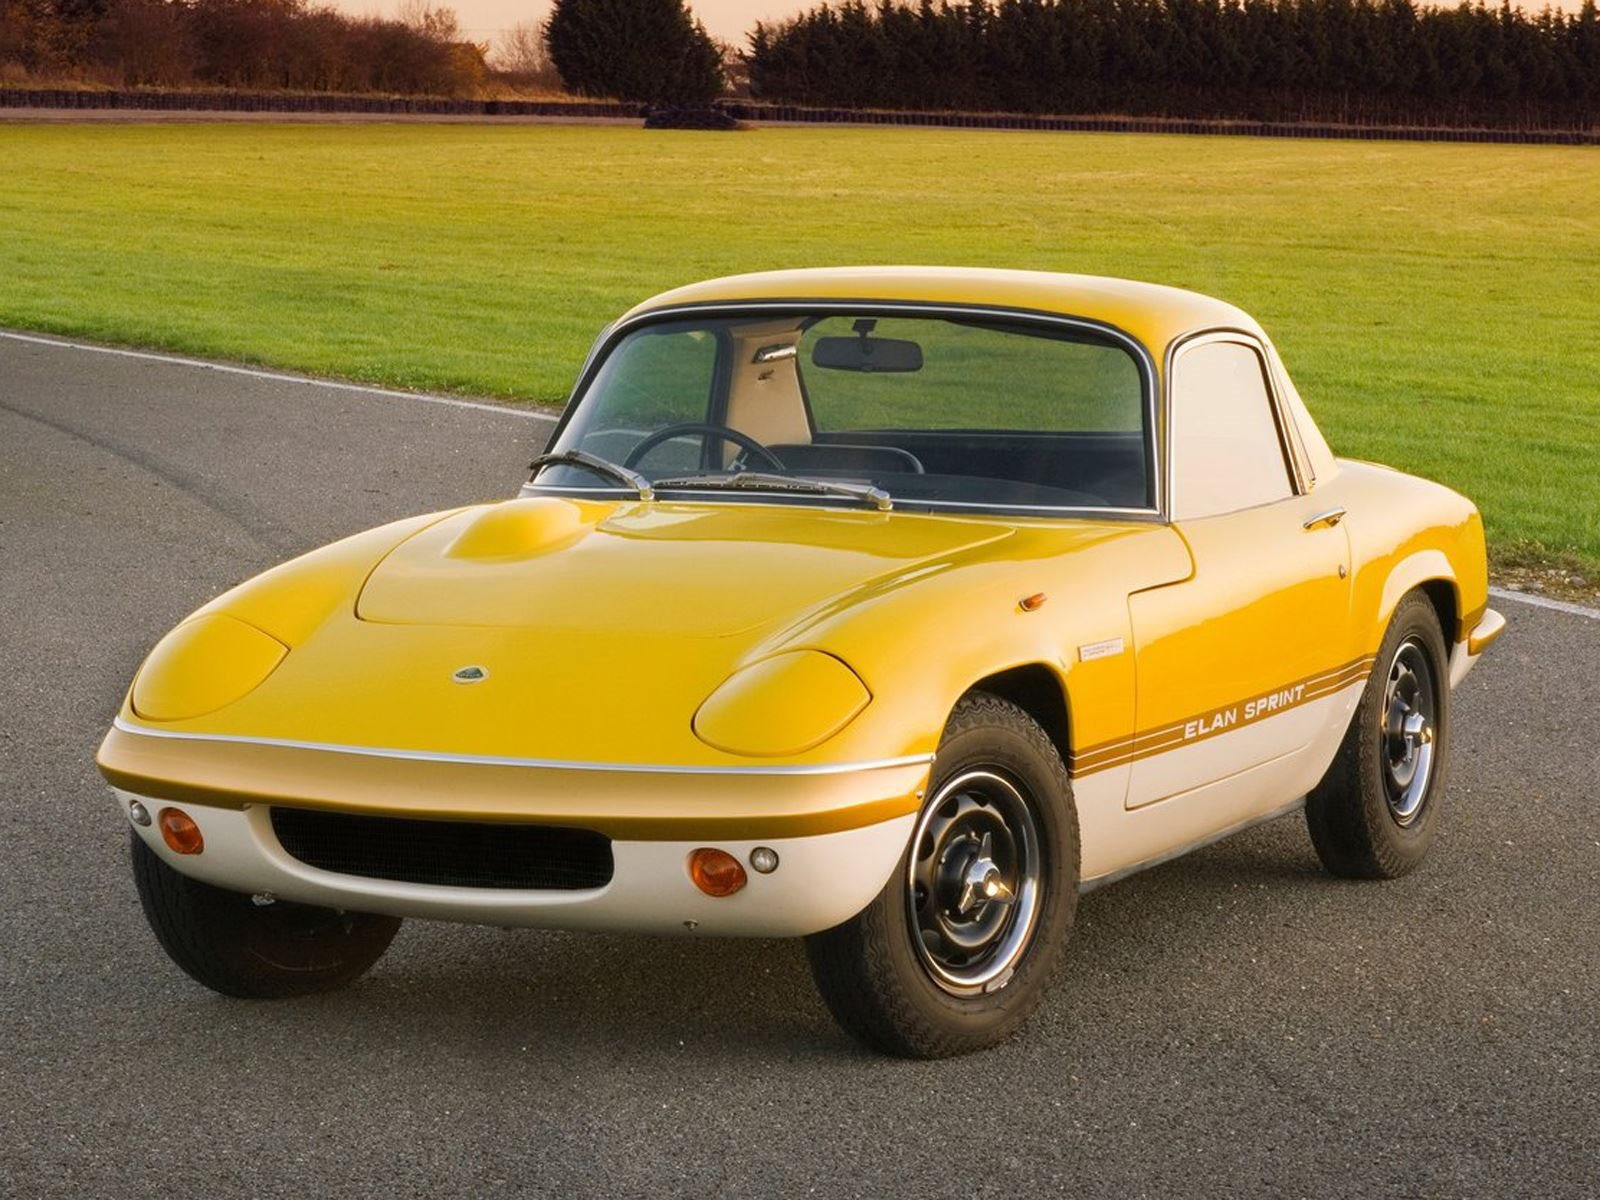 McLaren CEO Has An Awesome Obsession With The Lotus Elan CarBuzz